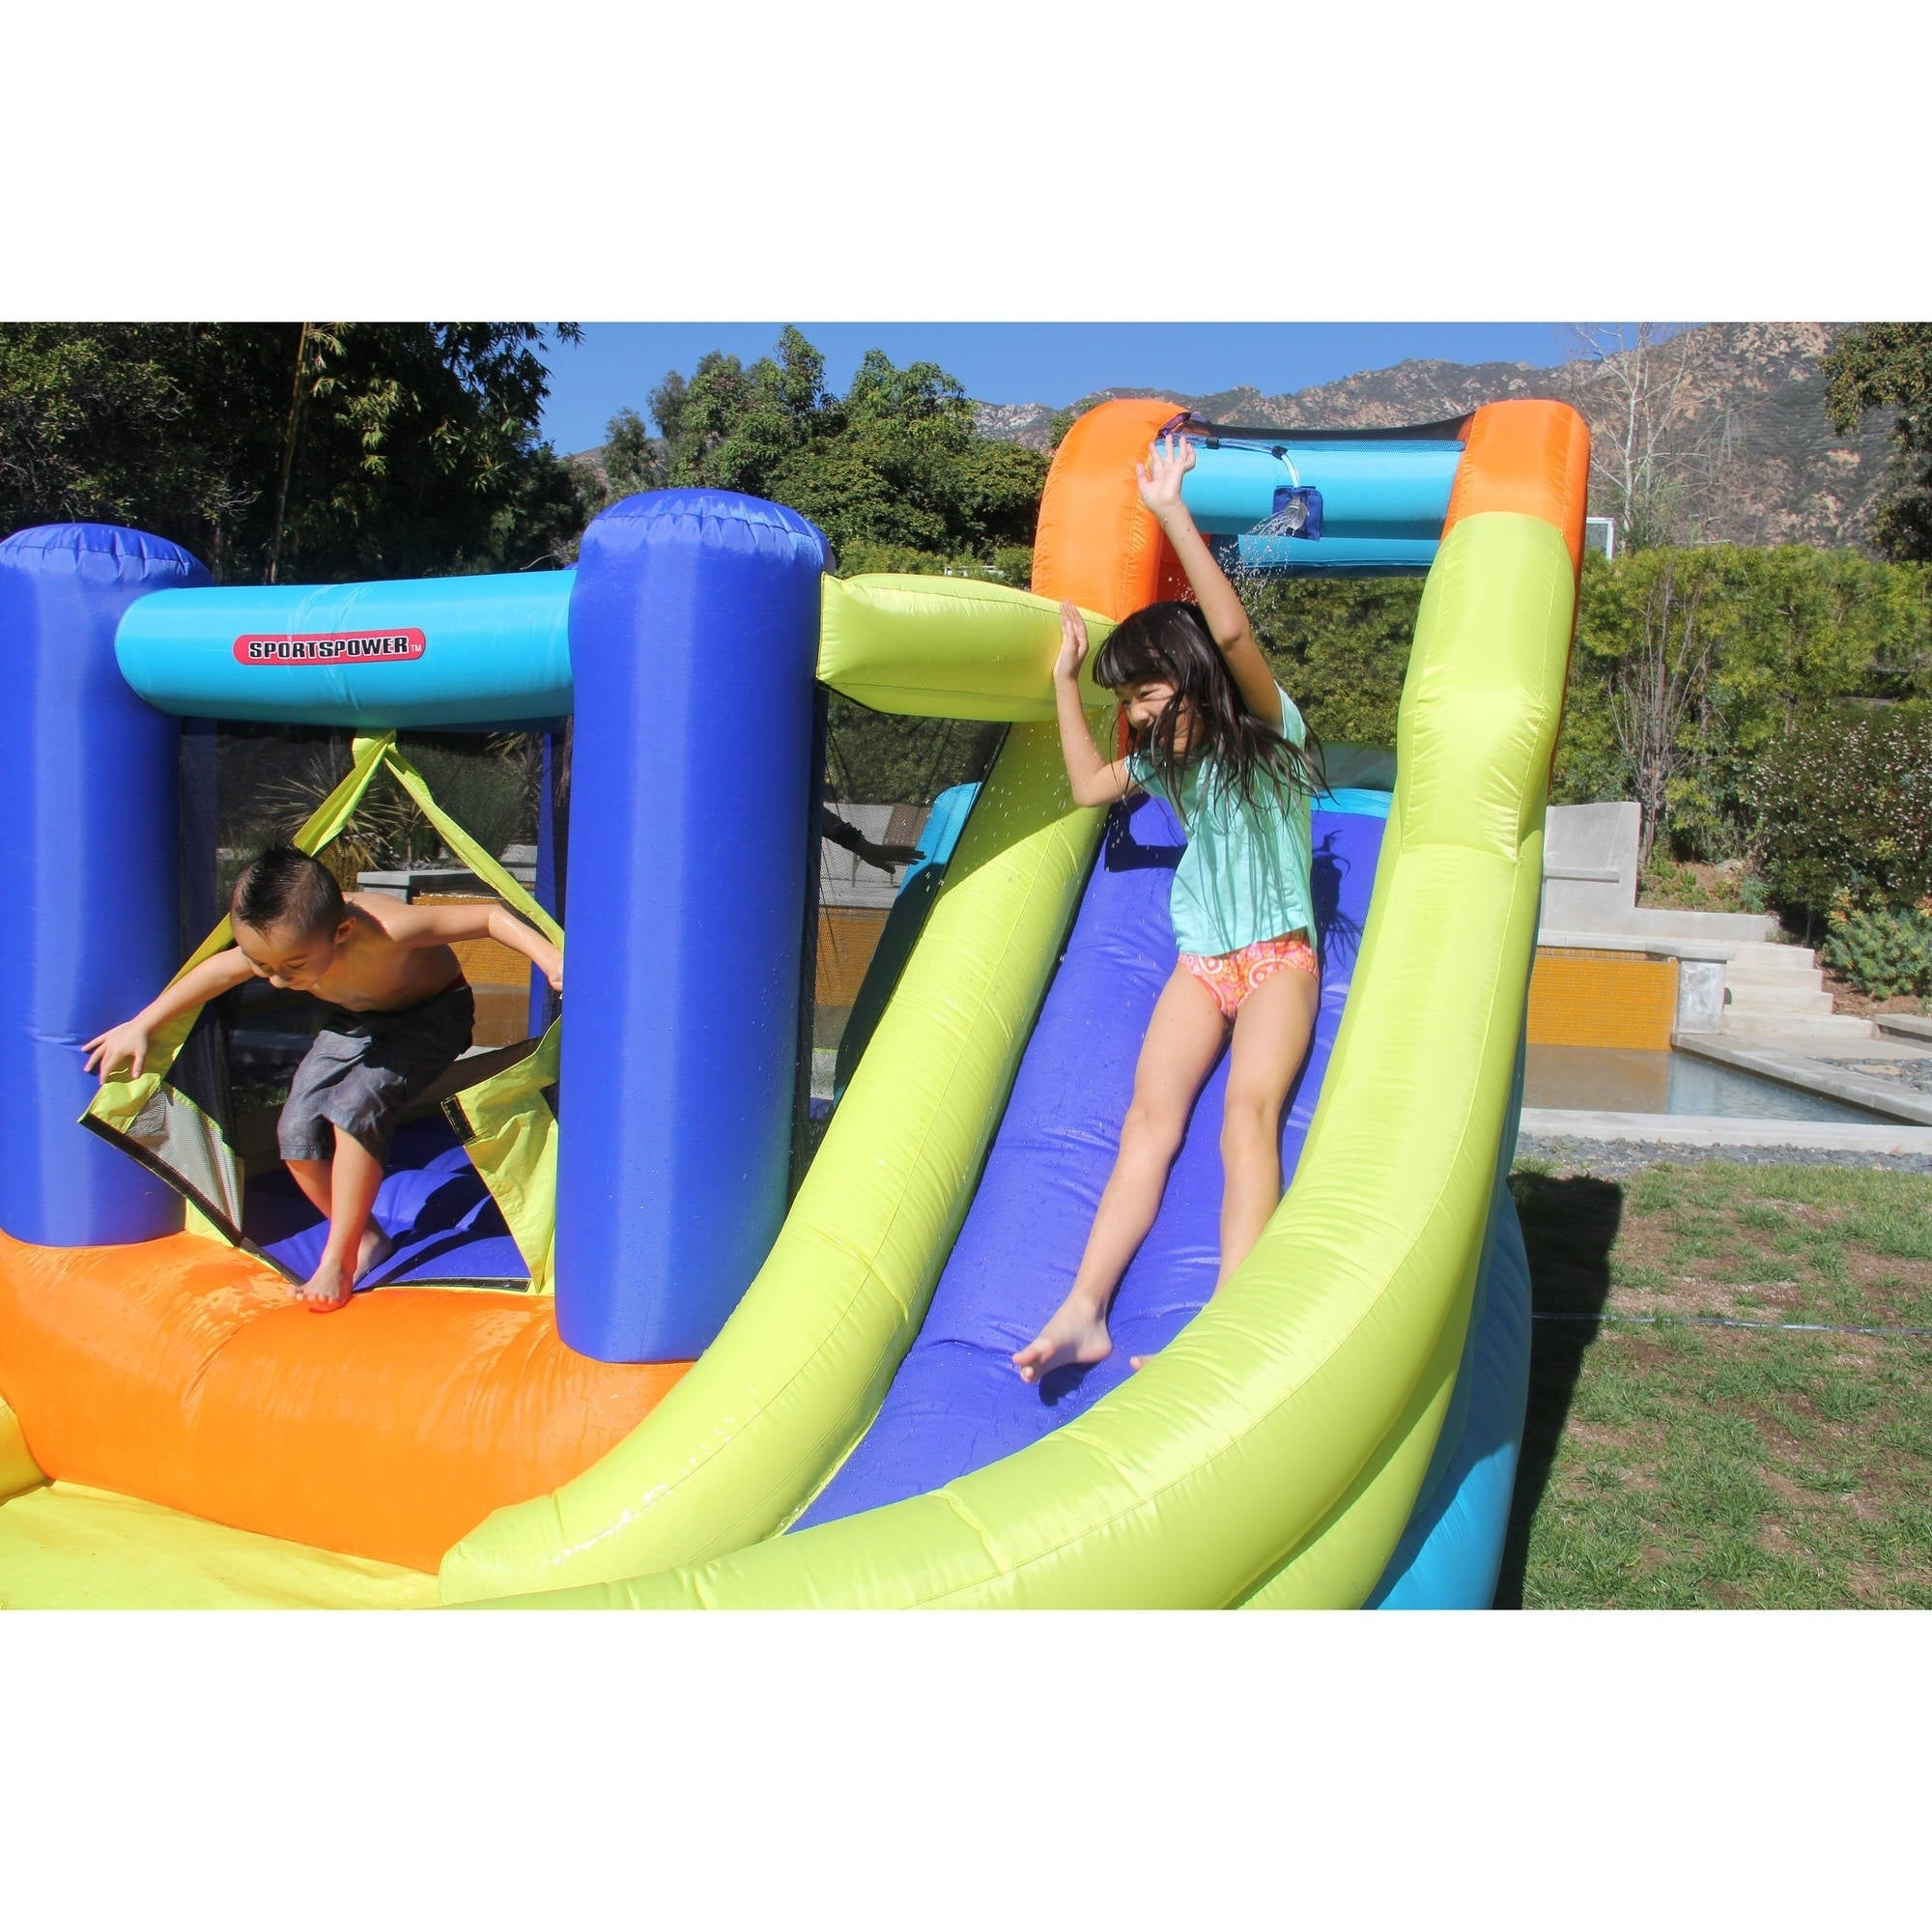 ed4a6ceb171 Shop Sportspower My First Jump n Slide Inflatable Bounce House and Slide - Free  Shipping Today - Overstock - 20309794